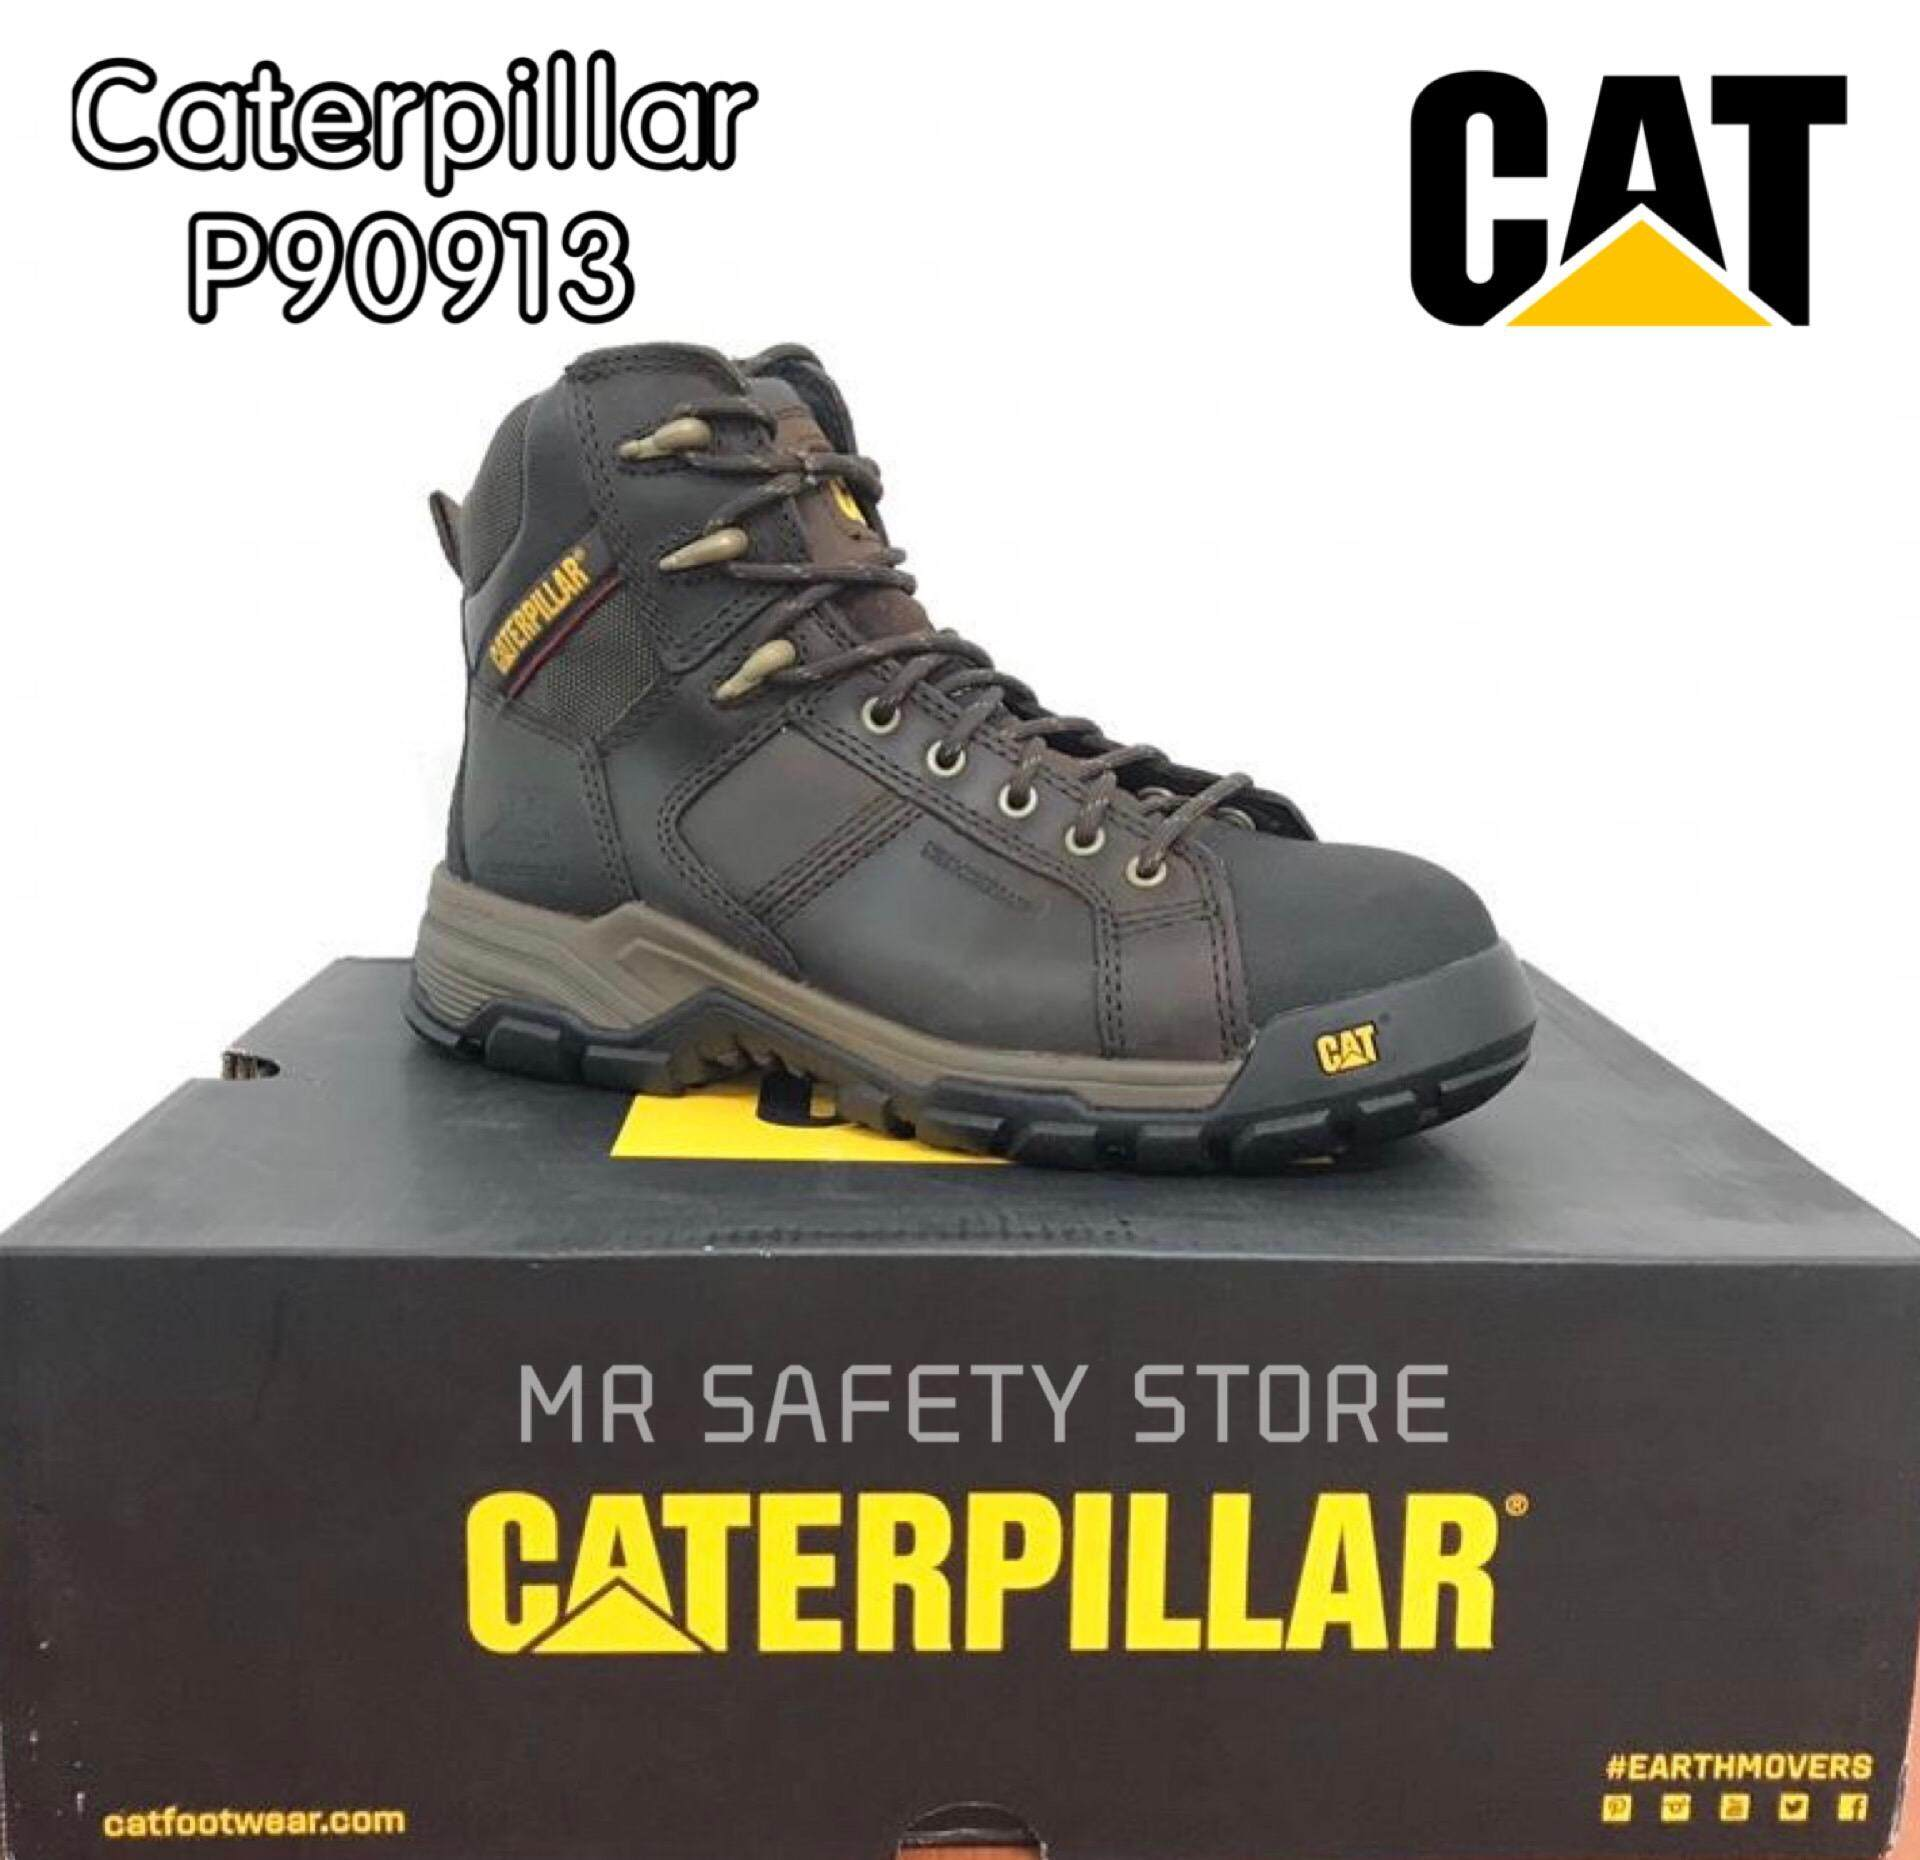 Caterpillar Boots Price In Malaysia Best Caterpillar Boots